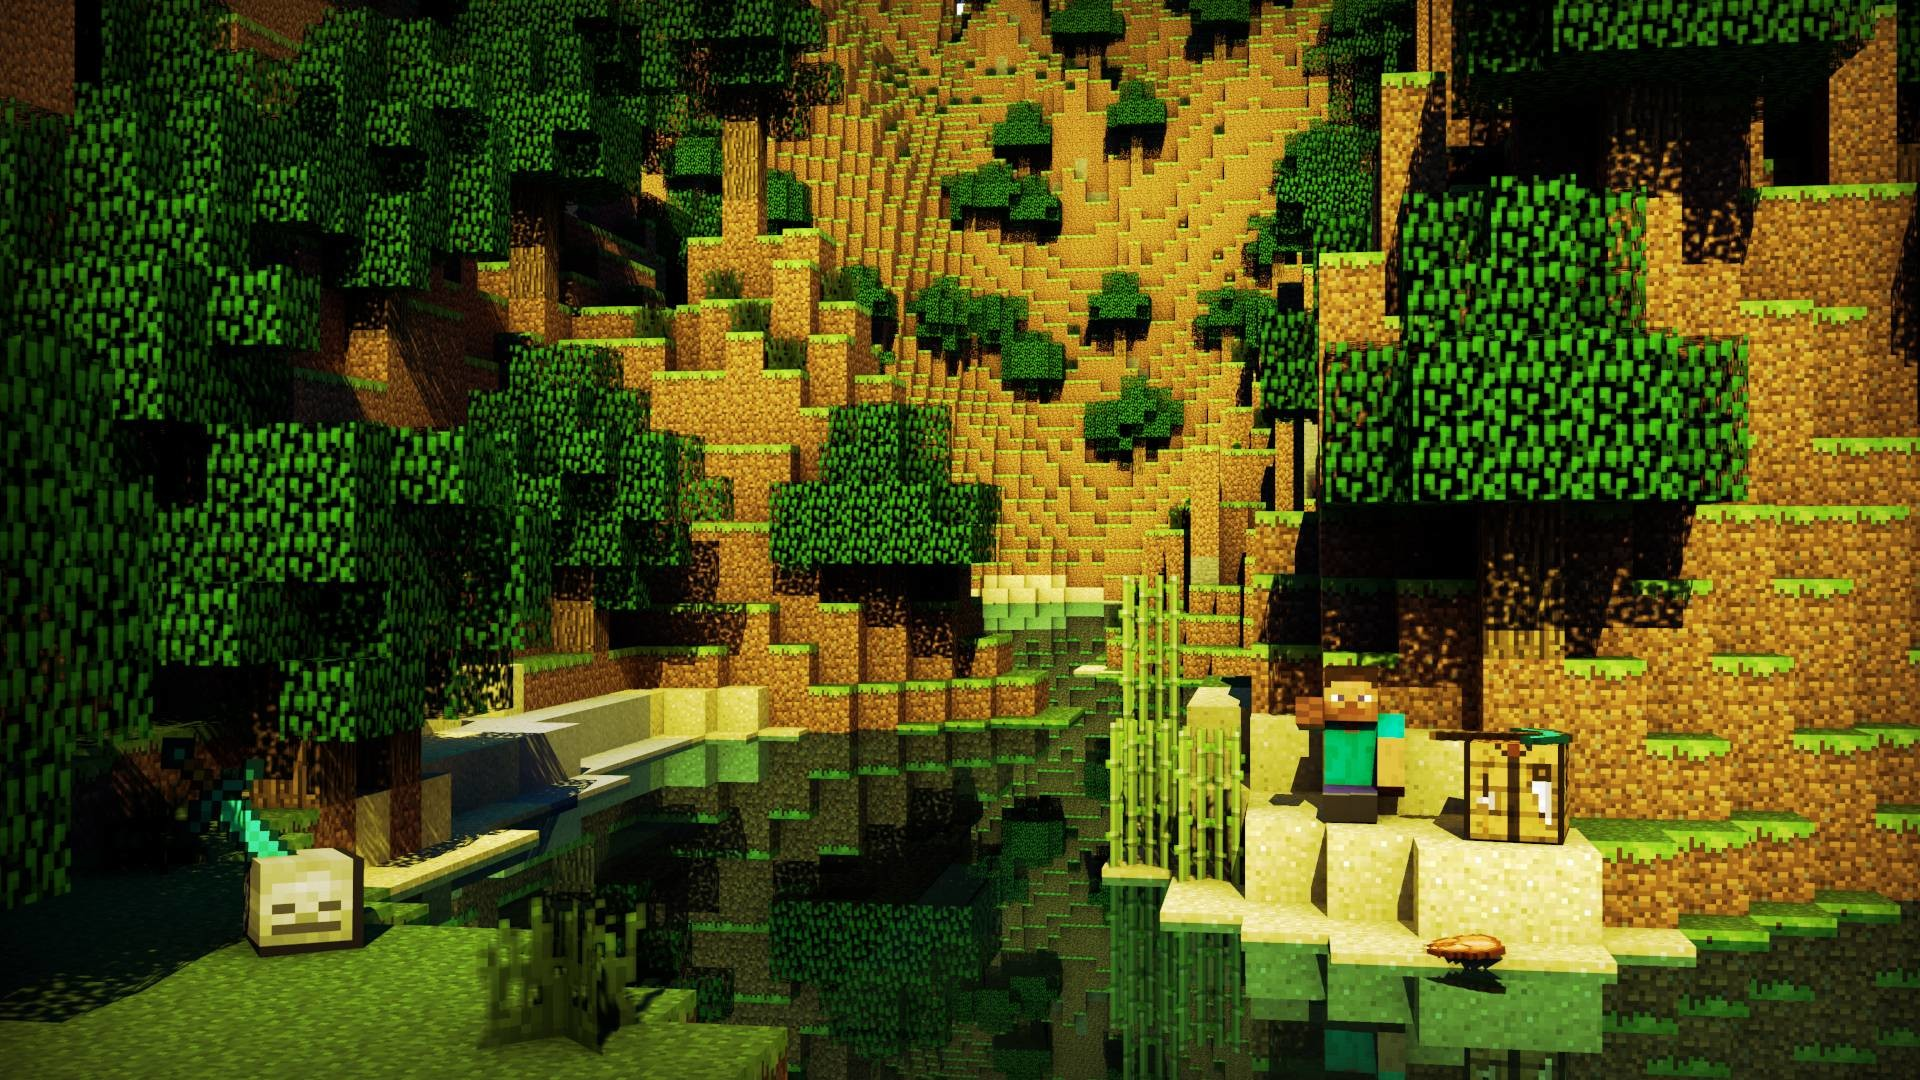 Must see Wallpaper Minecraft Cellphone - 935956-good-minecraft-backgrounds-1920x1080-for-4k-monitor  Perfect Image Reference_274156.jpg